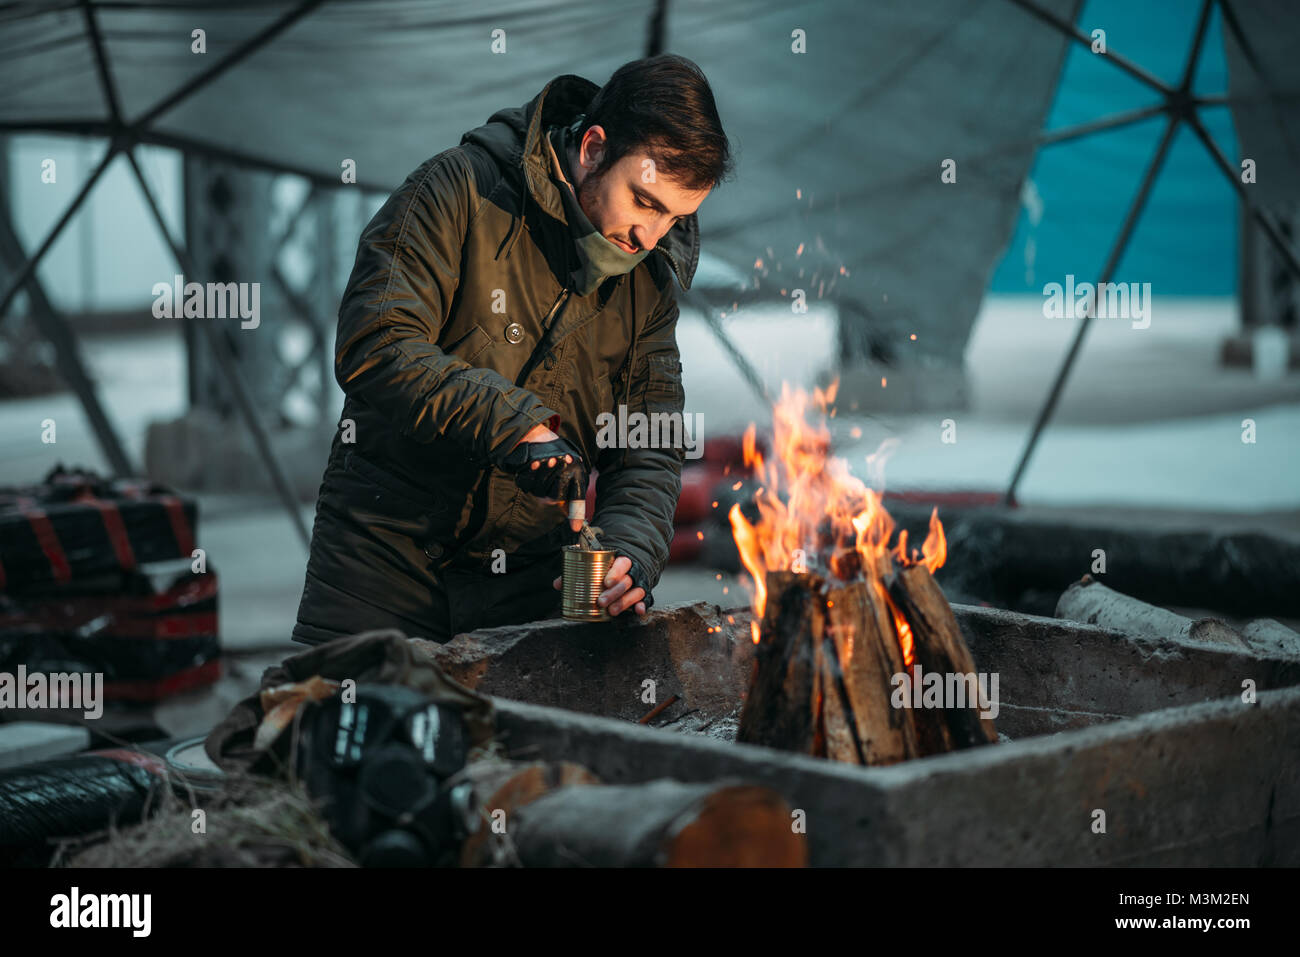 Stalker, male person cooking canned food on fire. Post apocalyptic lifestyle, doomsday - Stock Image